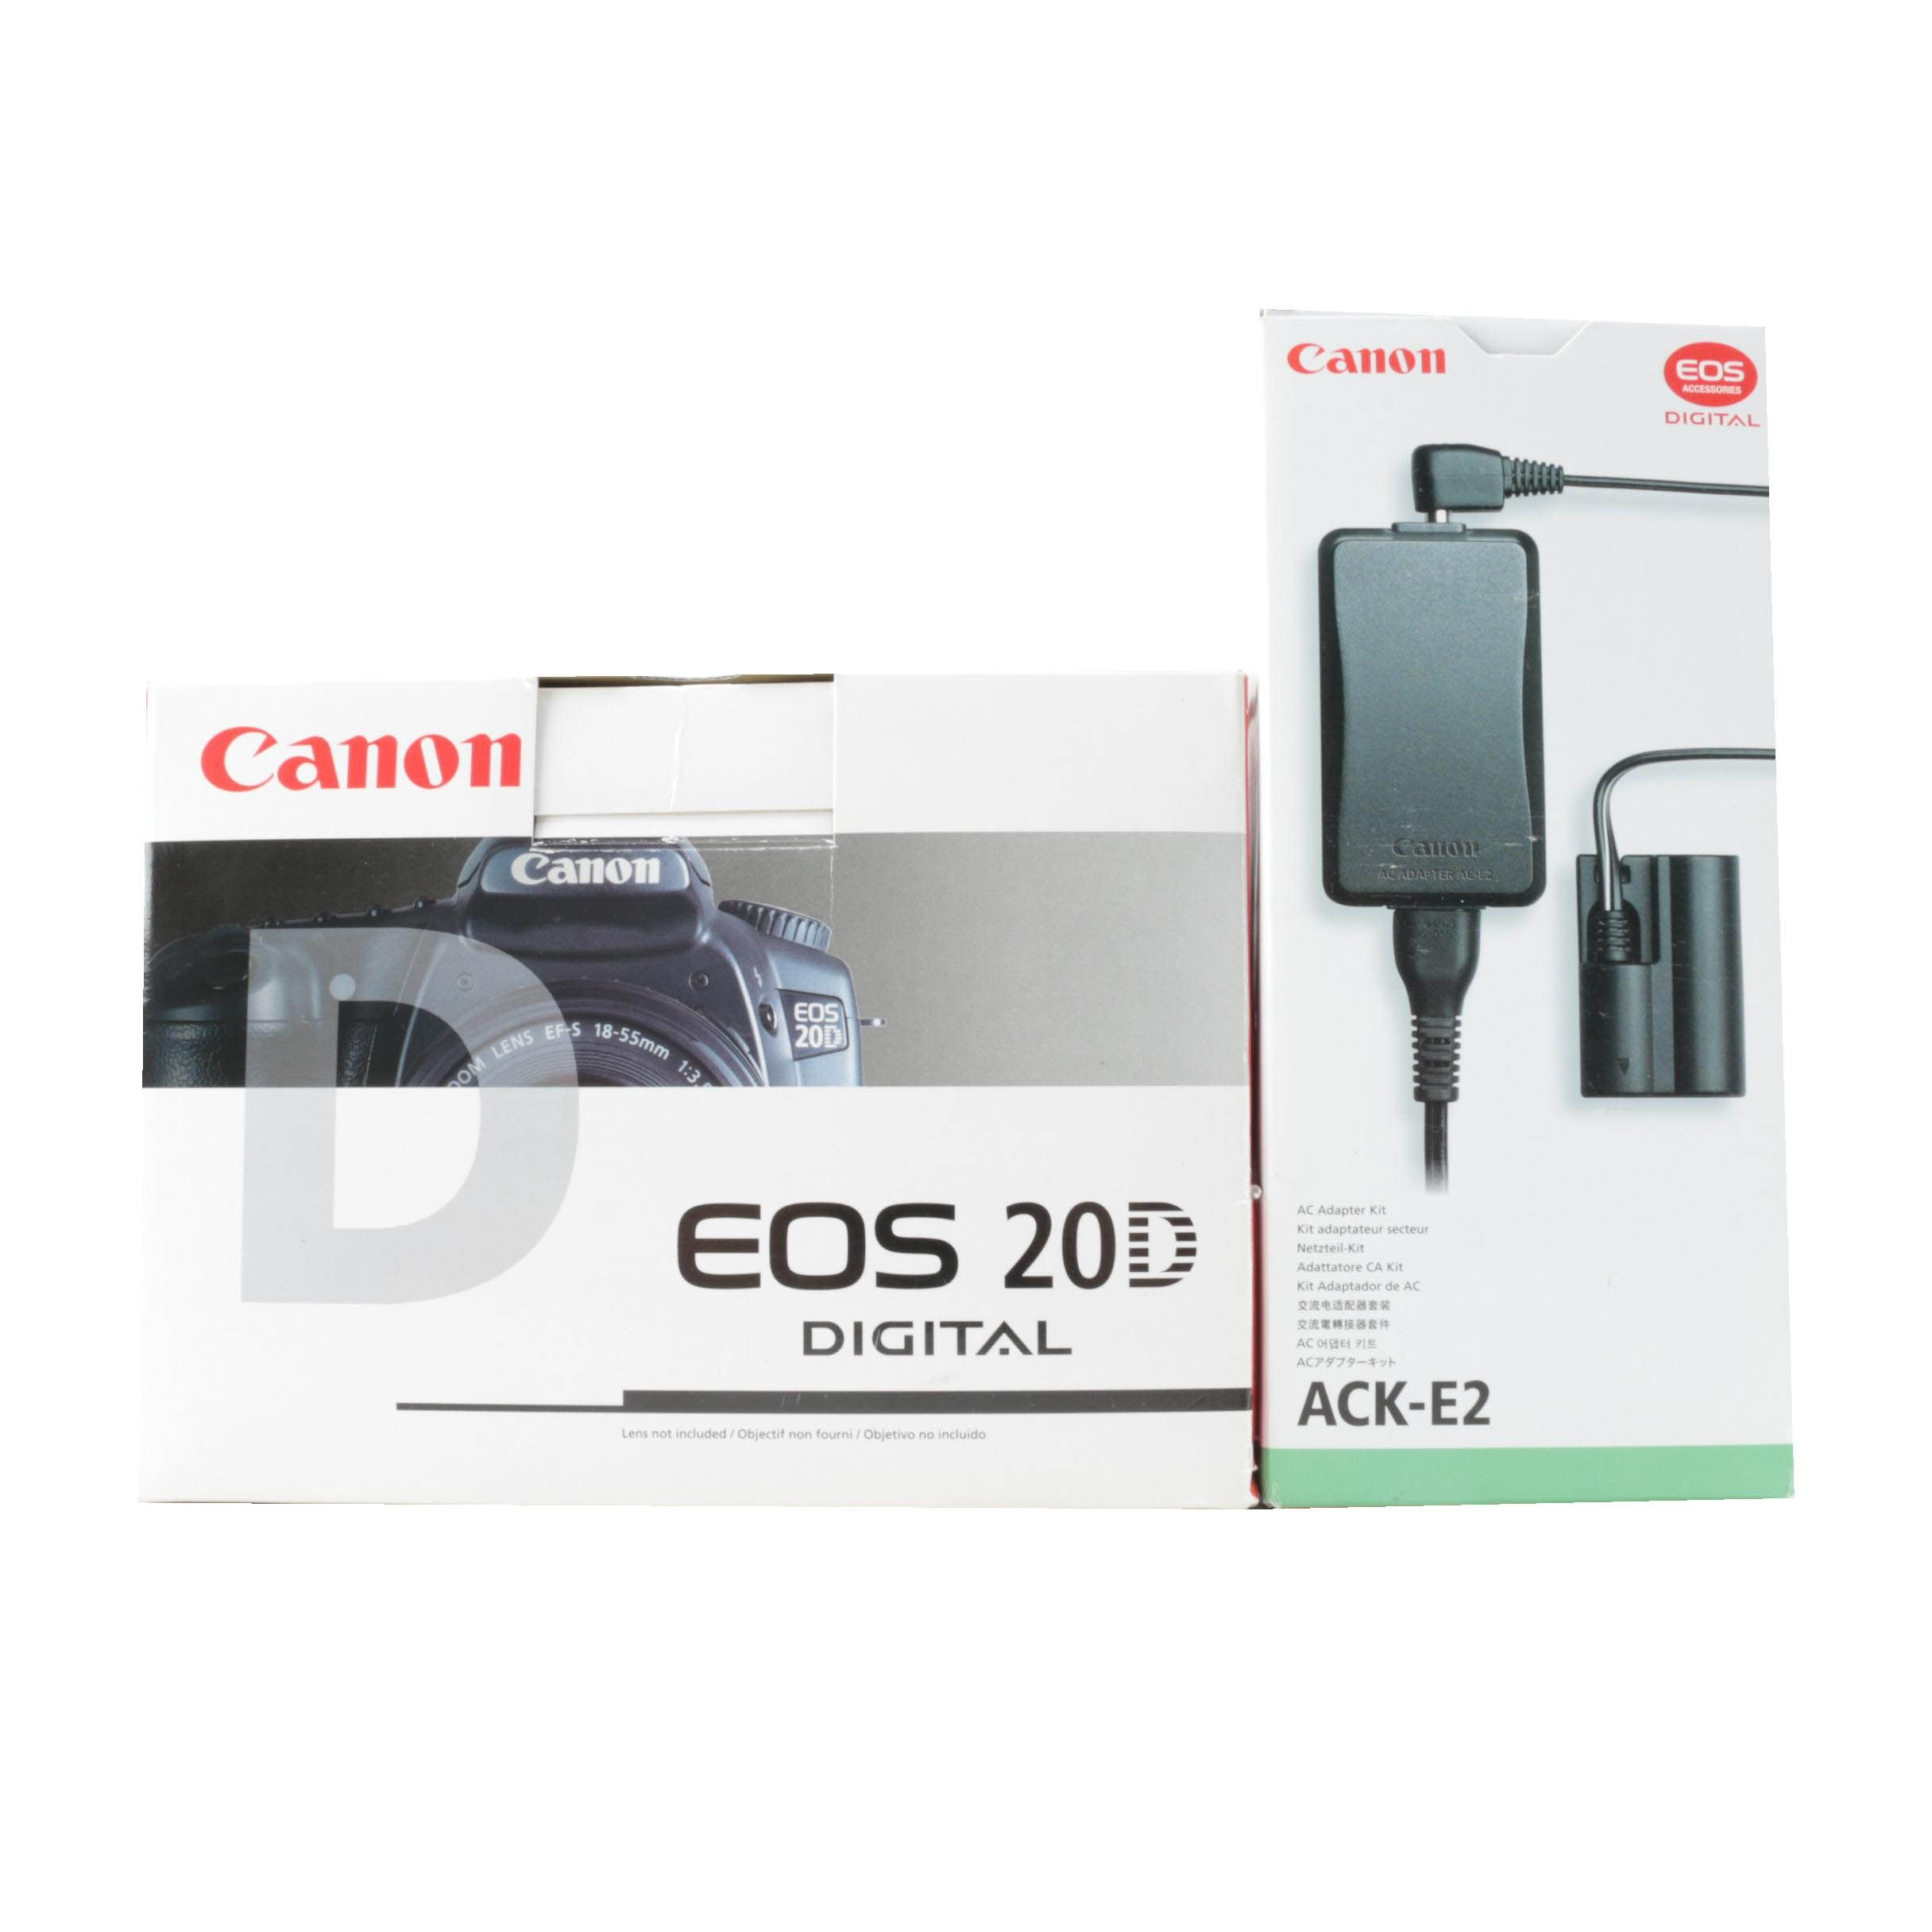 Canon EOS 20D Digital with Charger